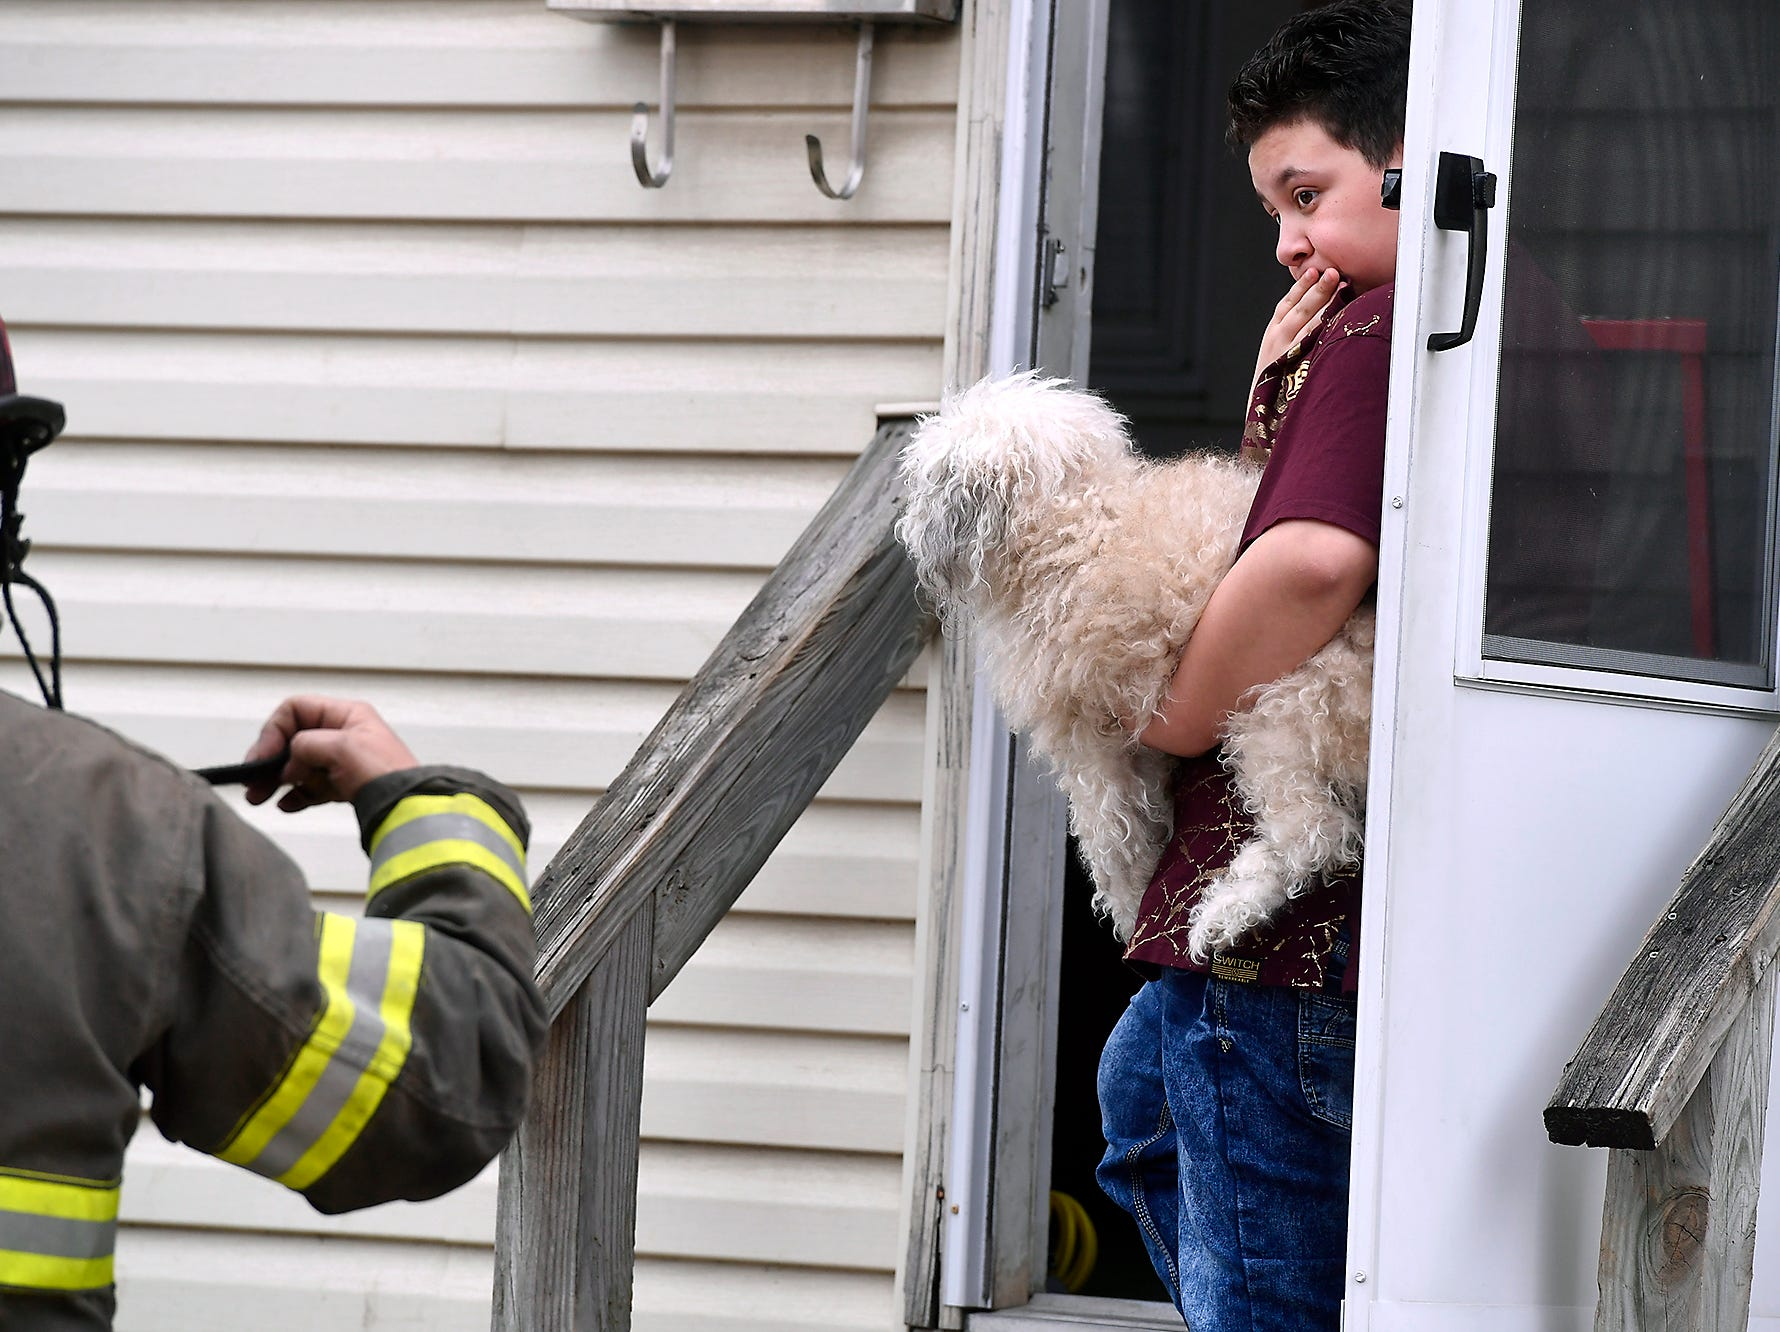 A boy holds the family doge while watching firefighters clear his home in the 600 block of S. Pershing Ave. of smoke after a small fire, Sunday, April 14, 2019. The fire was contained to a first floor laundry room. 